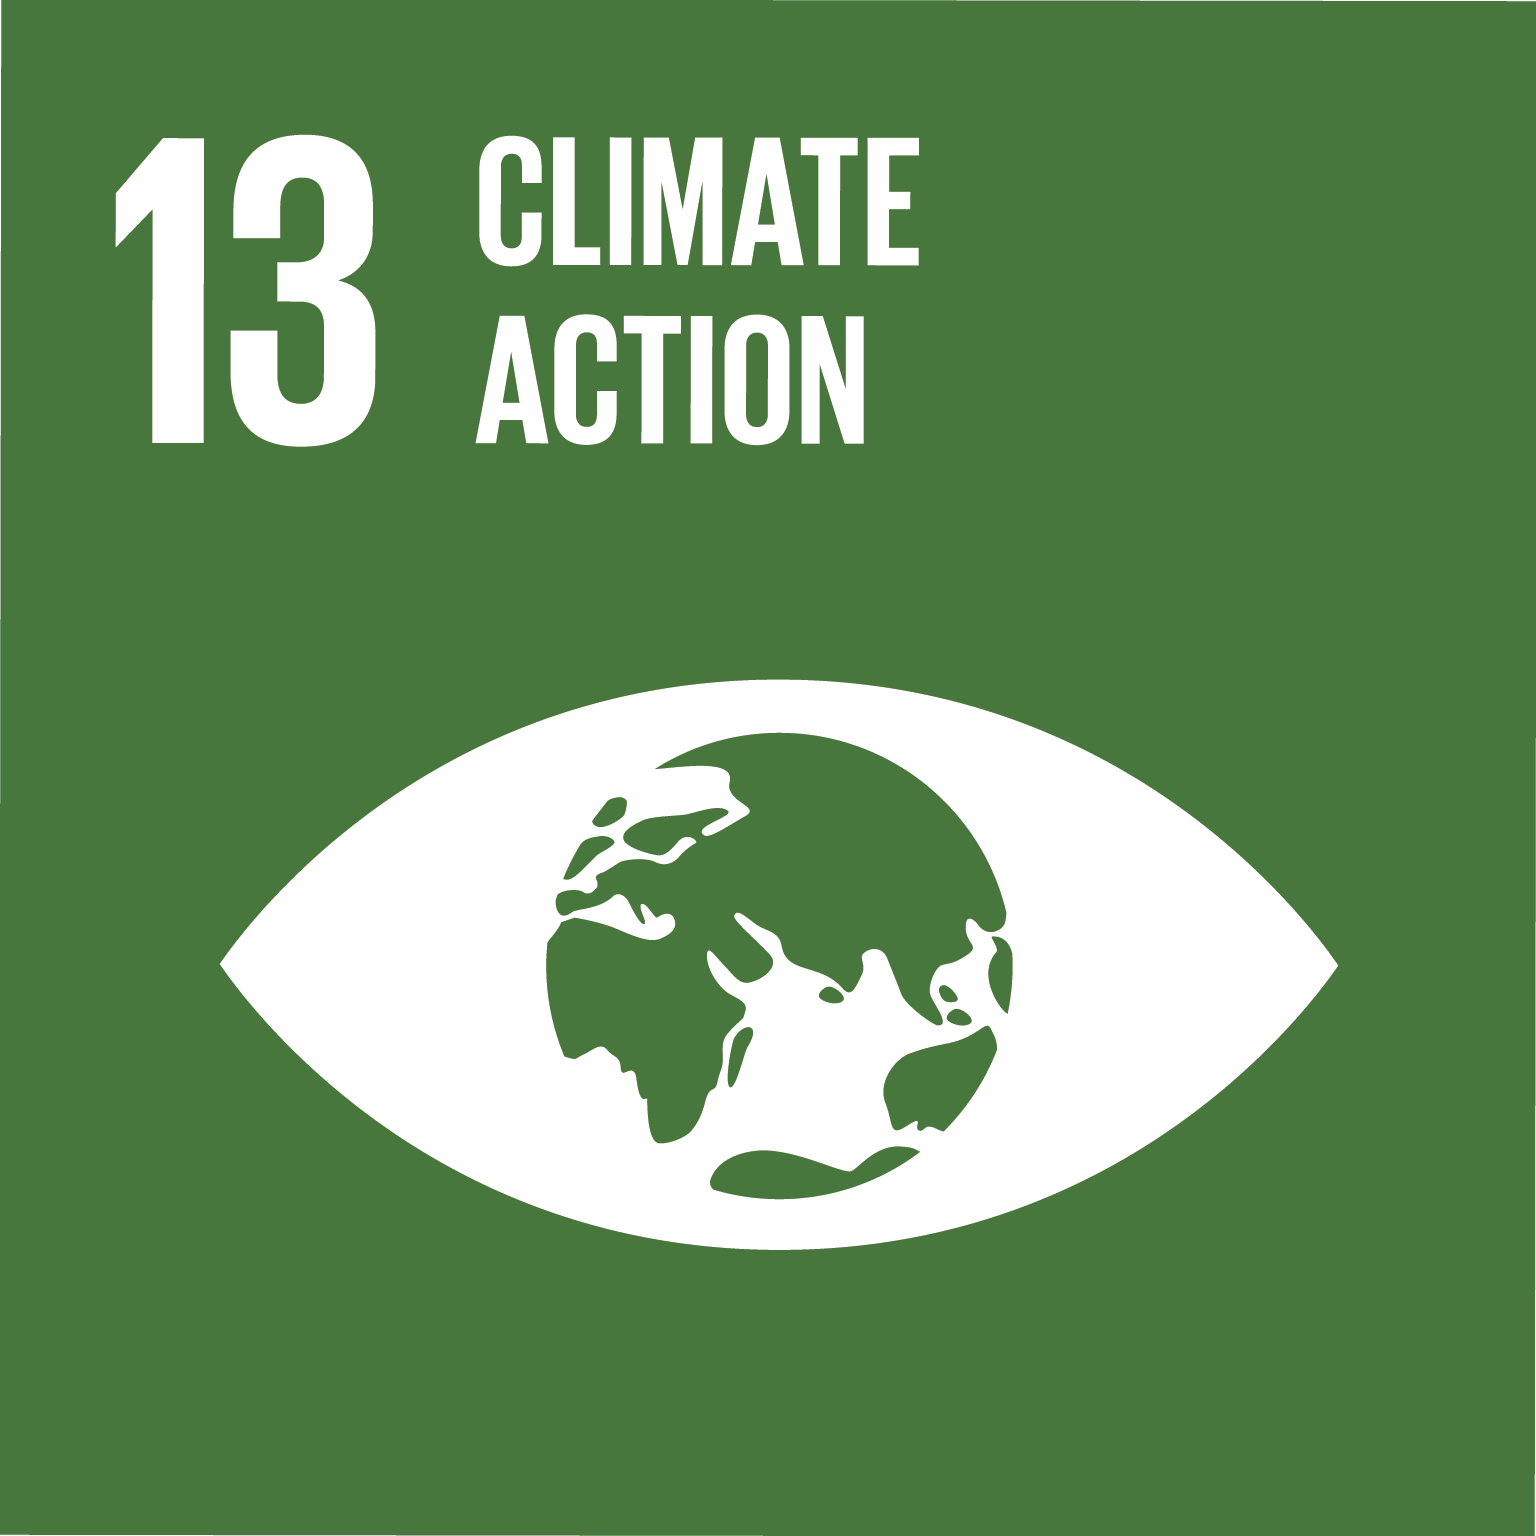 13 - climate action